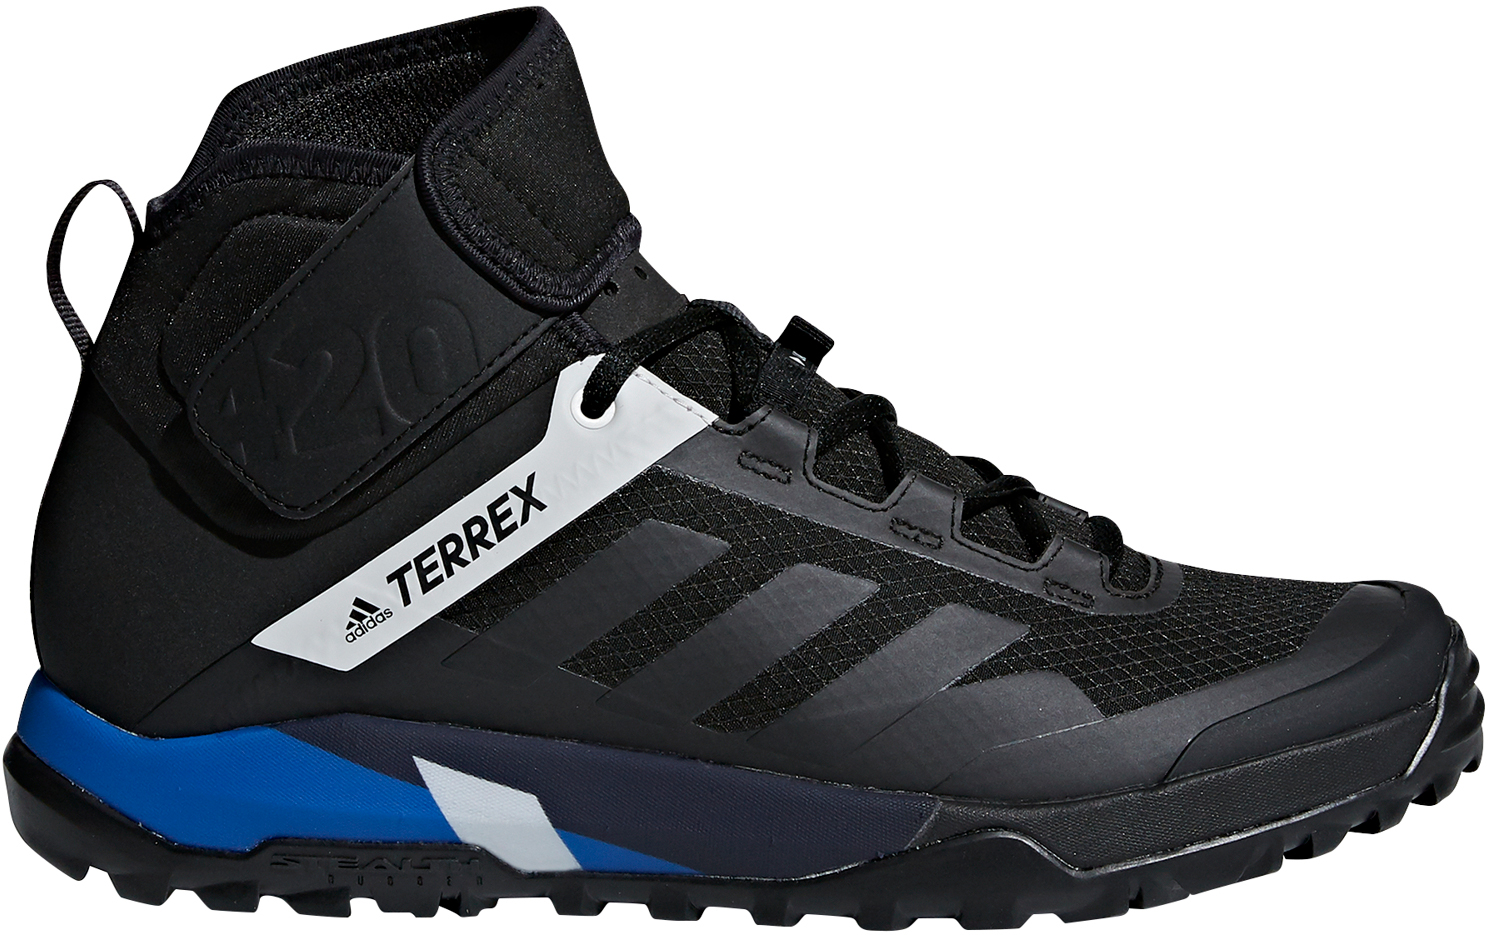 adidas Men's Terrex Trail Cross Protect Shoe | Shoes